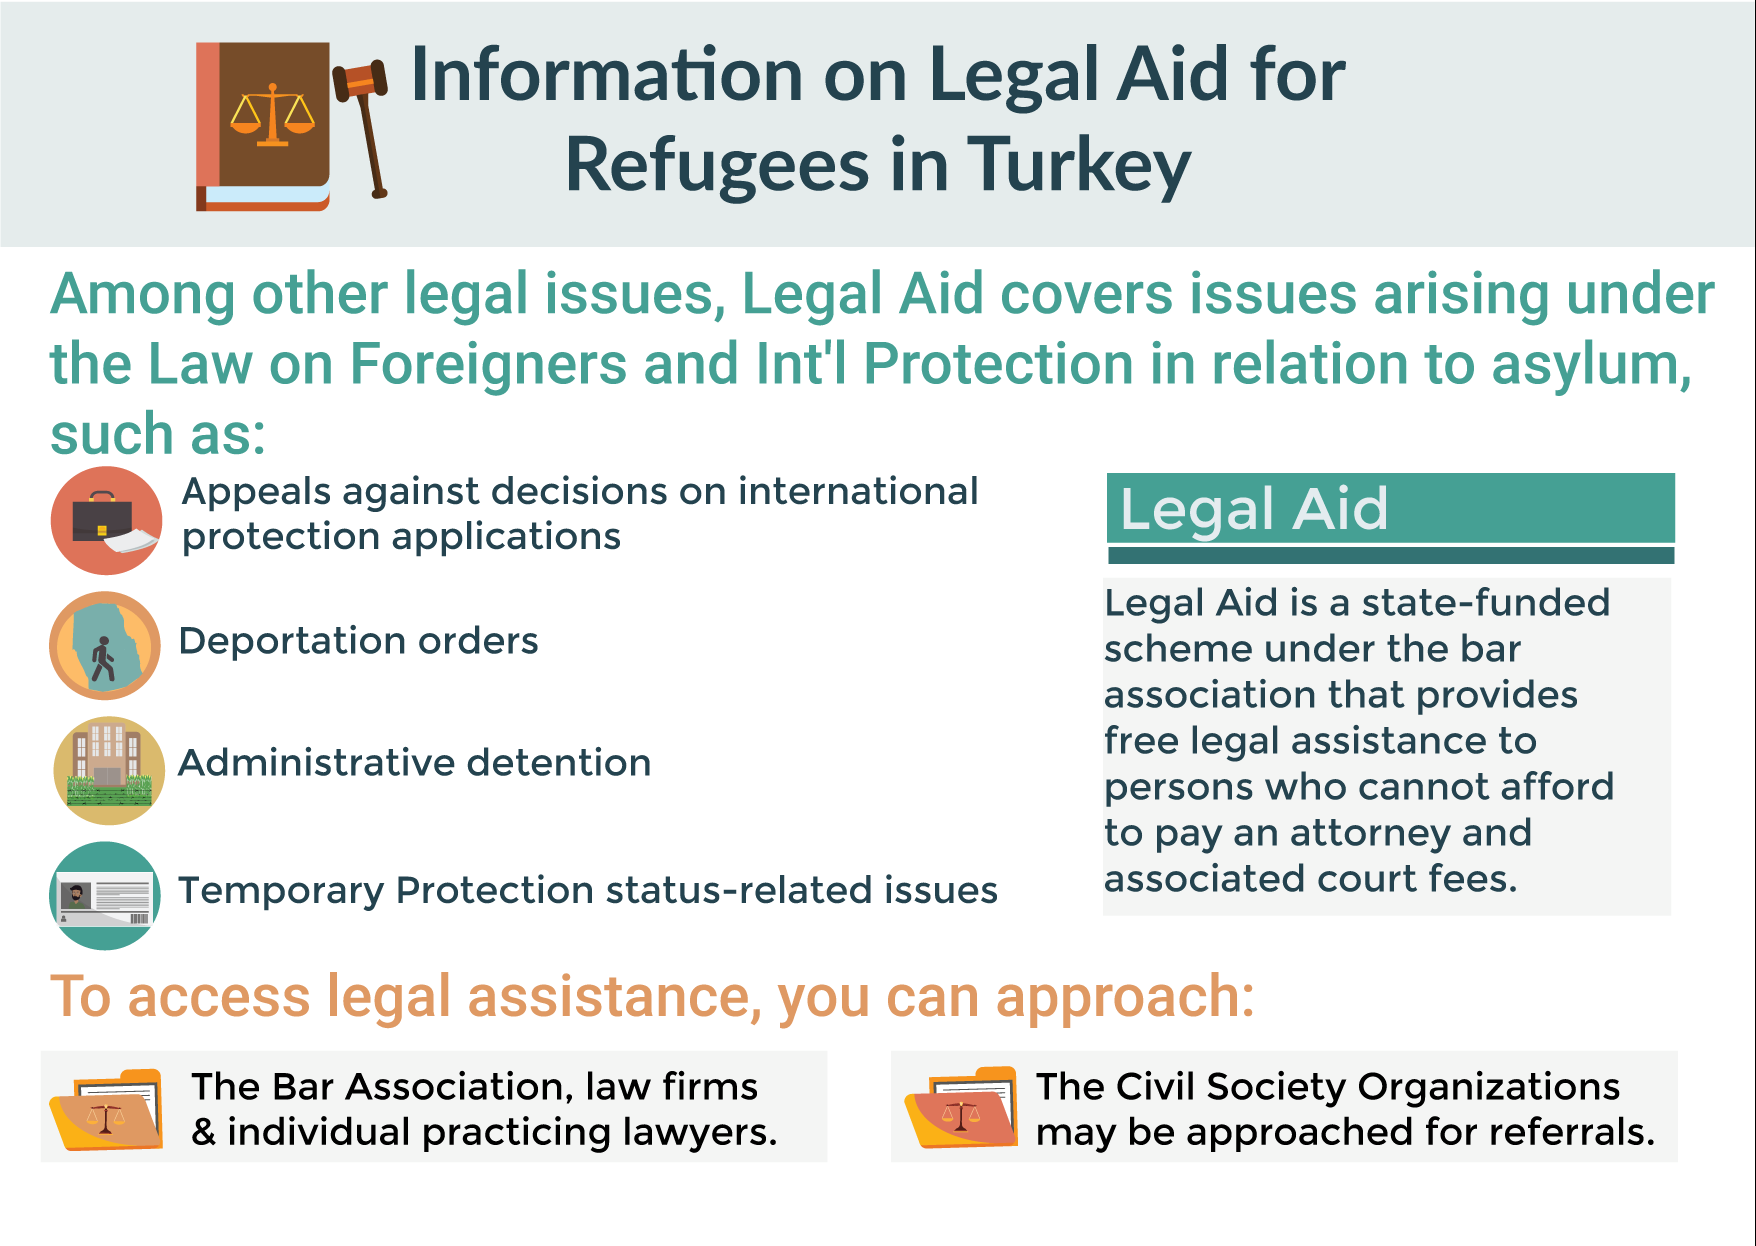 legal issues, Legal Aid (Adli Yardım) asylum Appeals against decisions on international protection applications Deportation orders Administrative detention Temporary Protection status-related issues Legal Aid is a state-funded scheme under the bar association that provides free legal assistance to persons who cannot afford to pay an attorney and associated court fees. The Bar Association Civil Society Organizations may be approached for referrals.